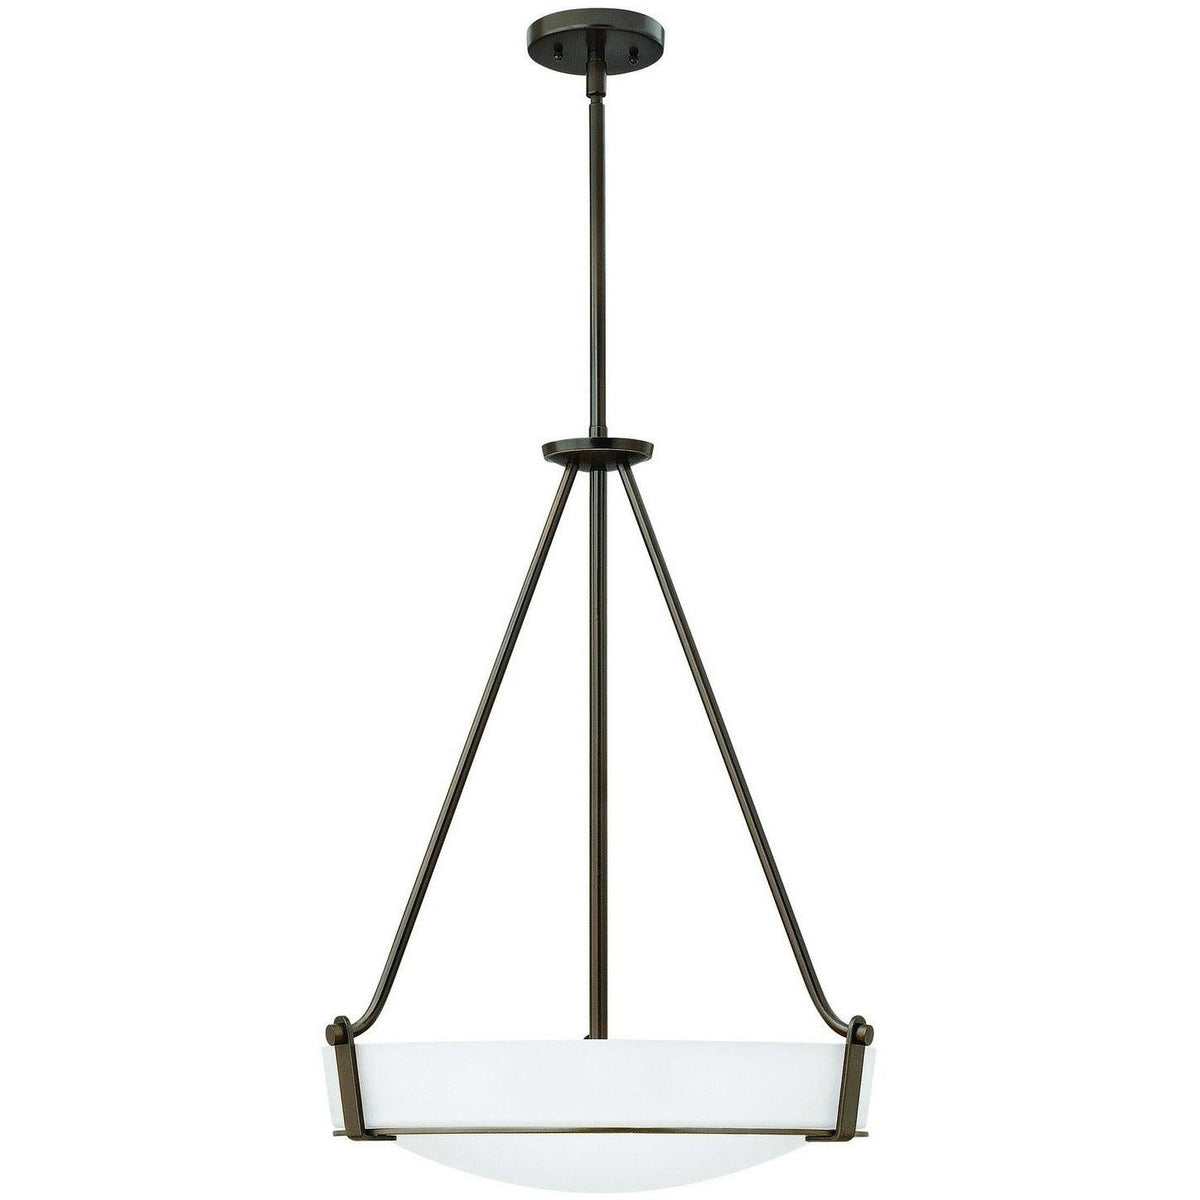 Hinkley Canada - 3222OB-WH-LED - LED Foyer Pendant - Hathaway - Olde Bronze With Etched White Glass